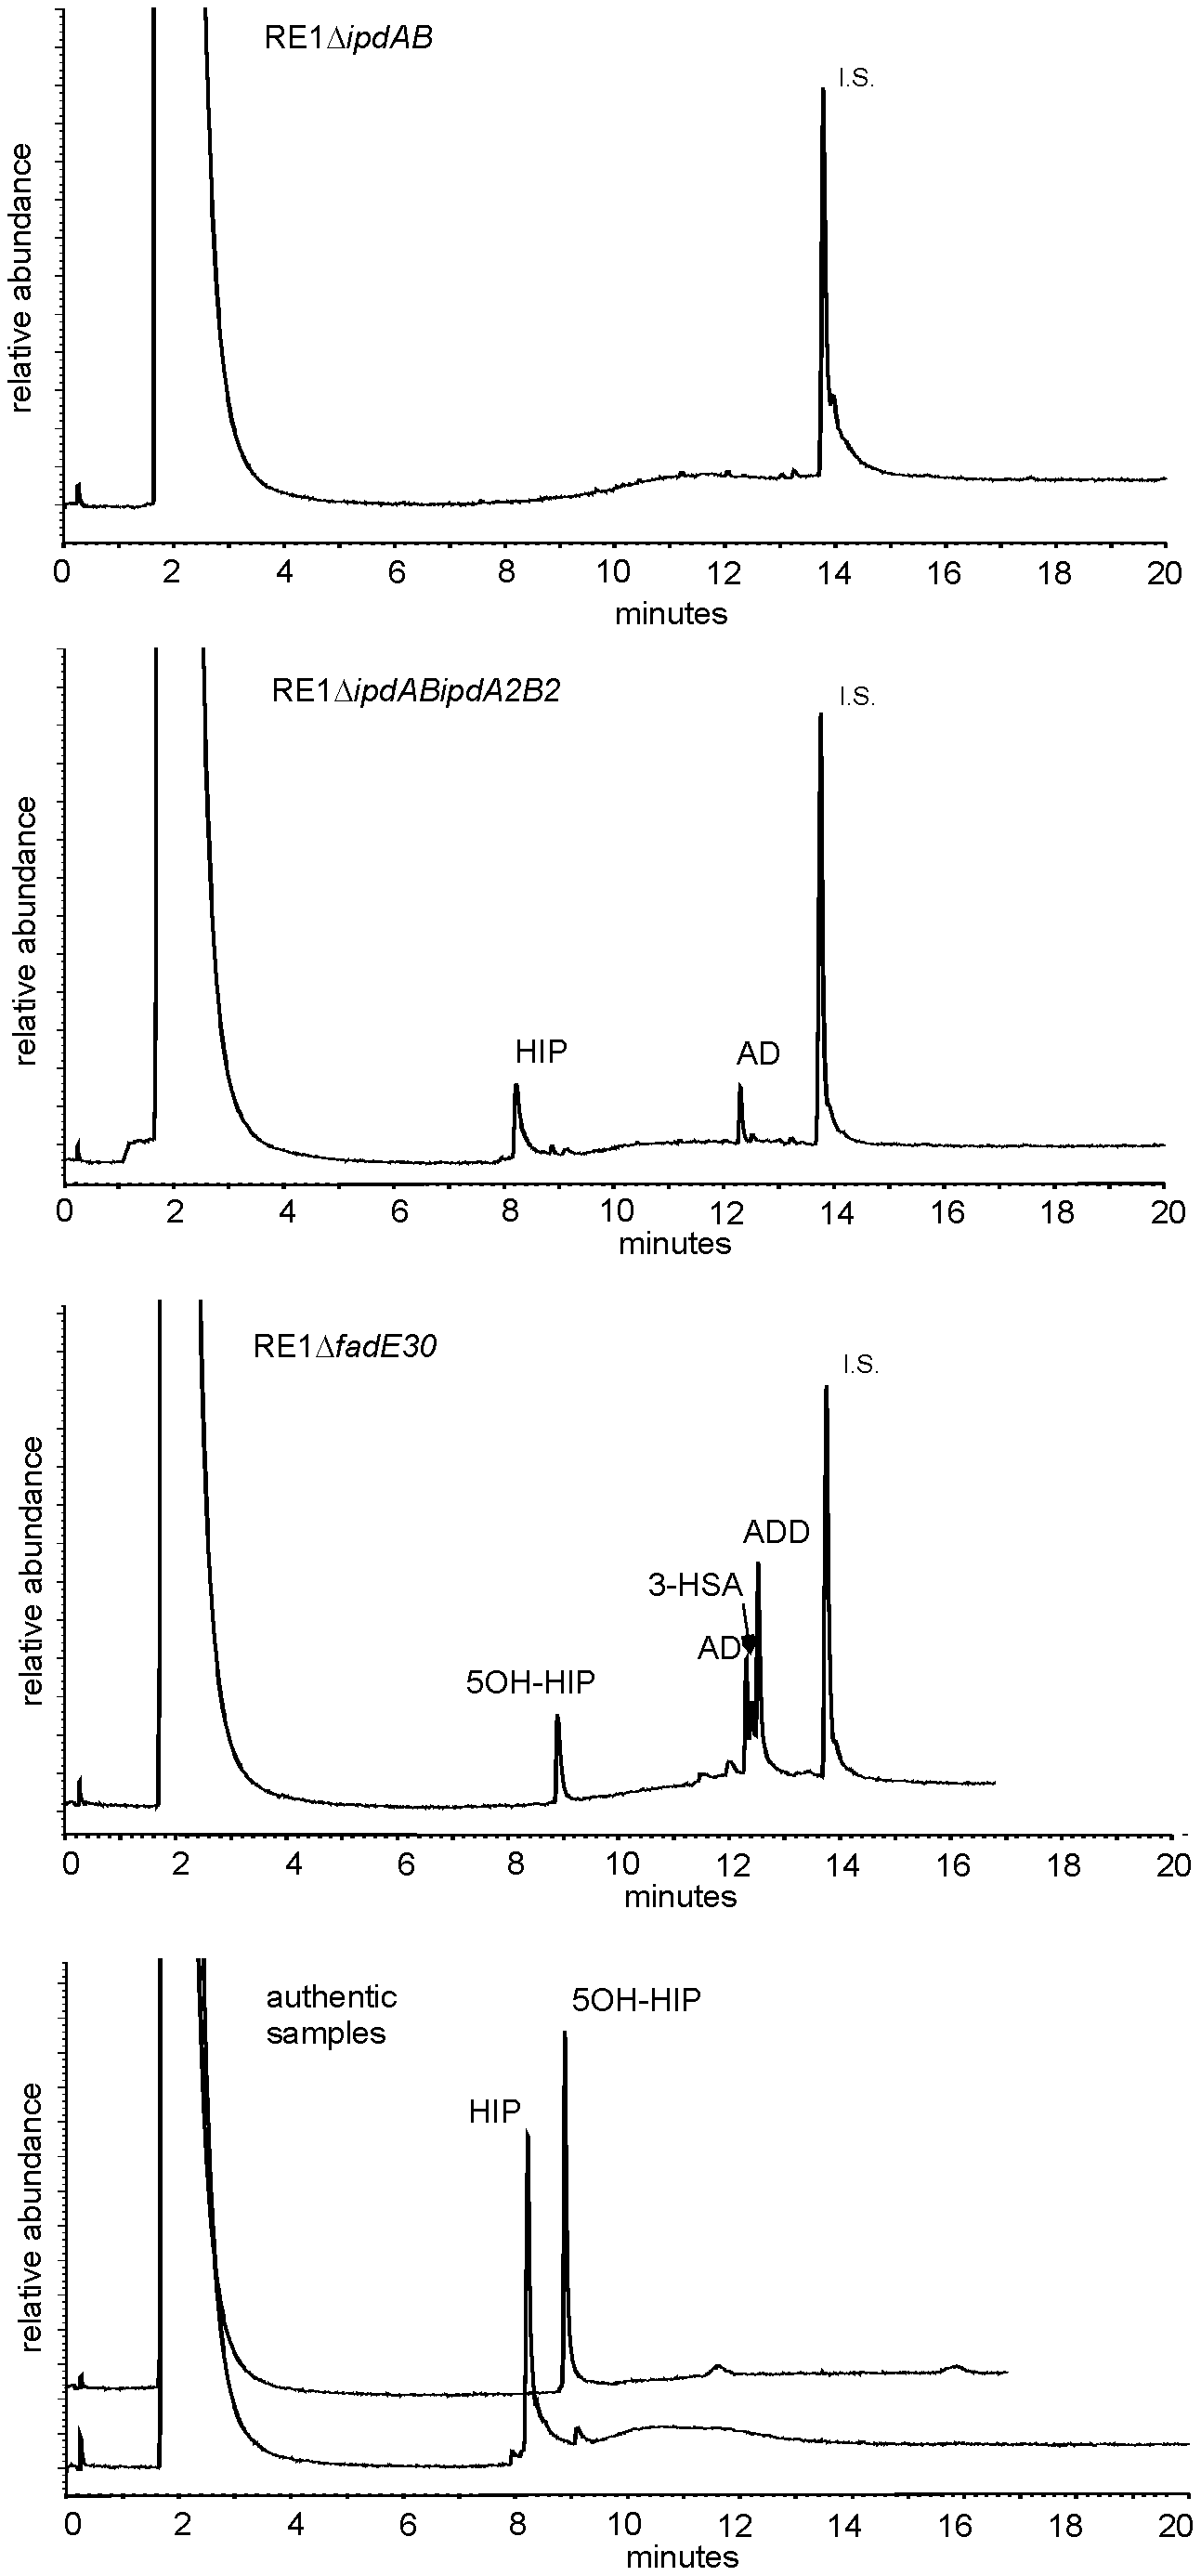 Gas chromatography profiles showing the formation of methylhexahydroindanone propionate intermediates during whole cell biotransformations of 4-androstene-3,17-dione (AD) by mutant strains of <i>R. equi</i> RE1 at T = 120 hours.